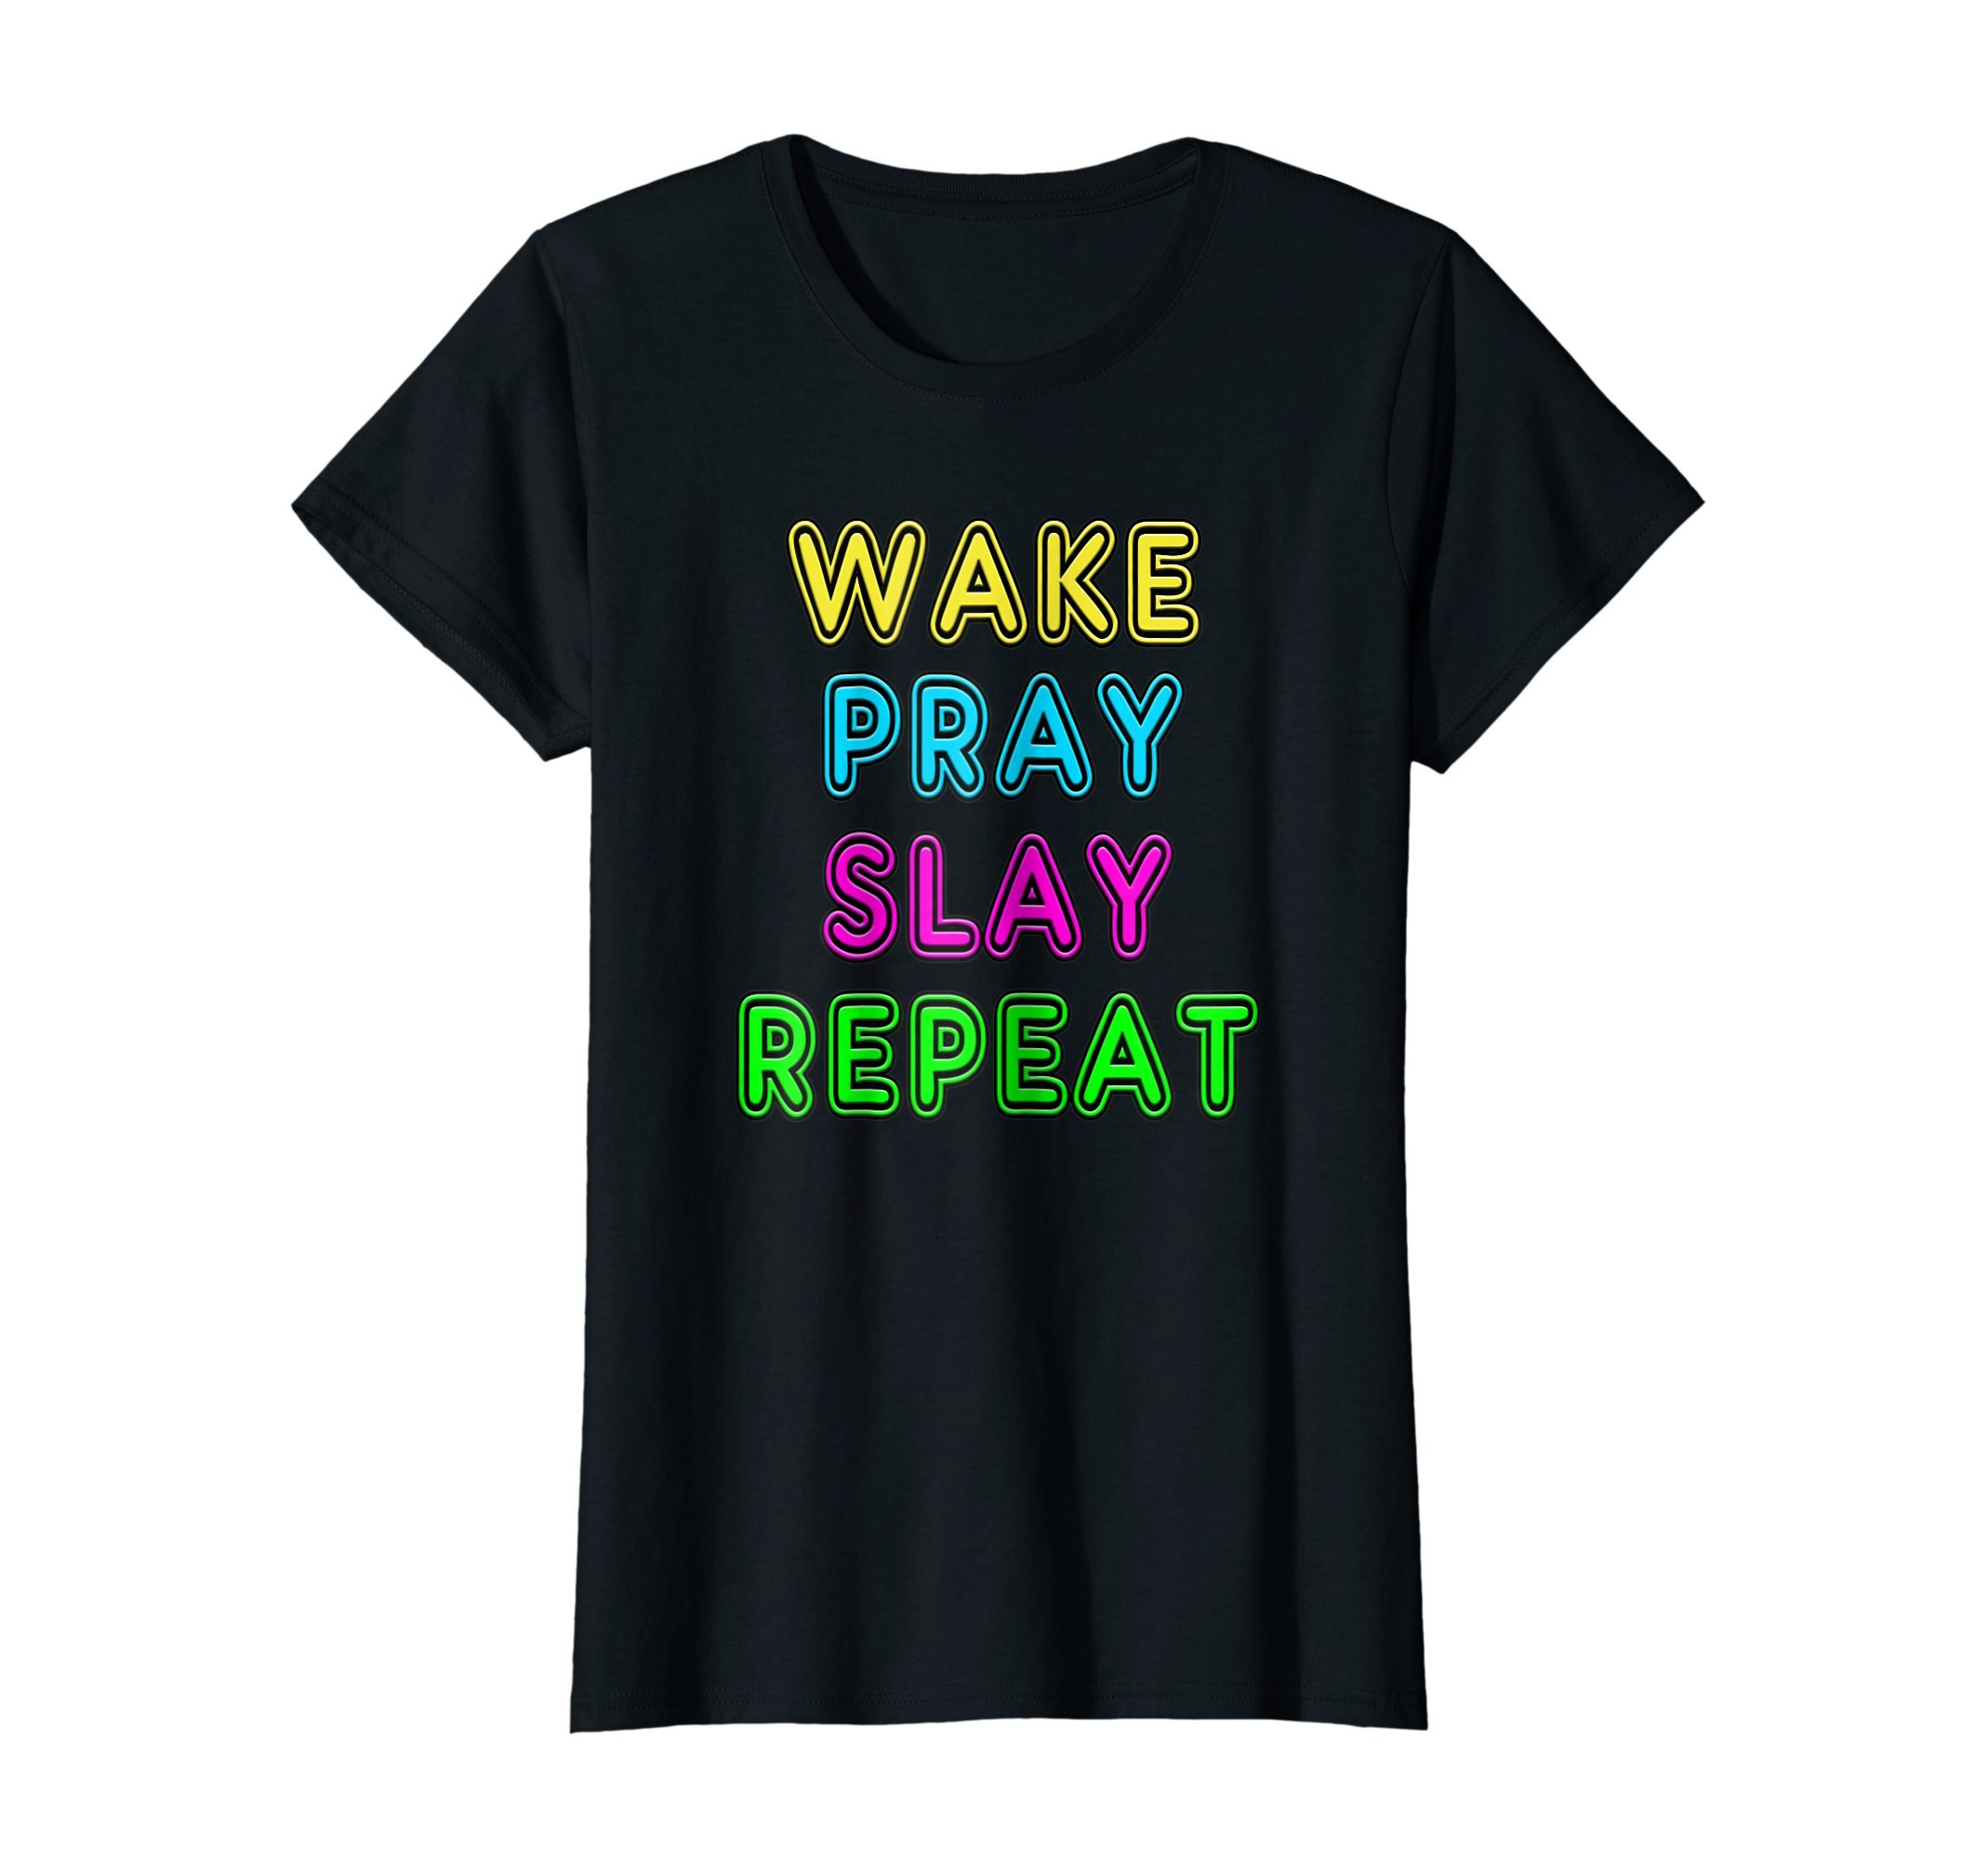 Womens Retro 80's Vintage Neon Sign Wake Pray Slay Repeat T-Shirt Small Black